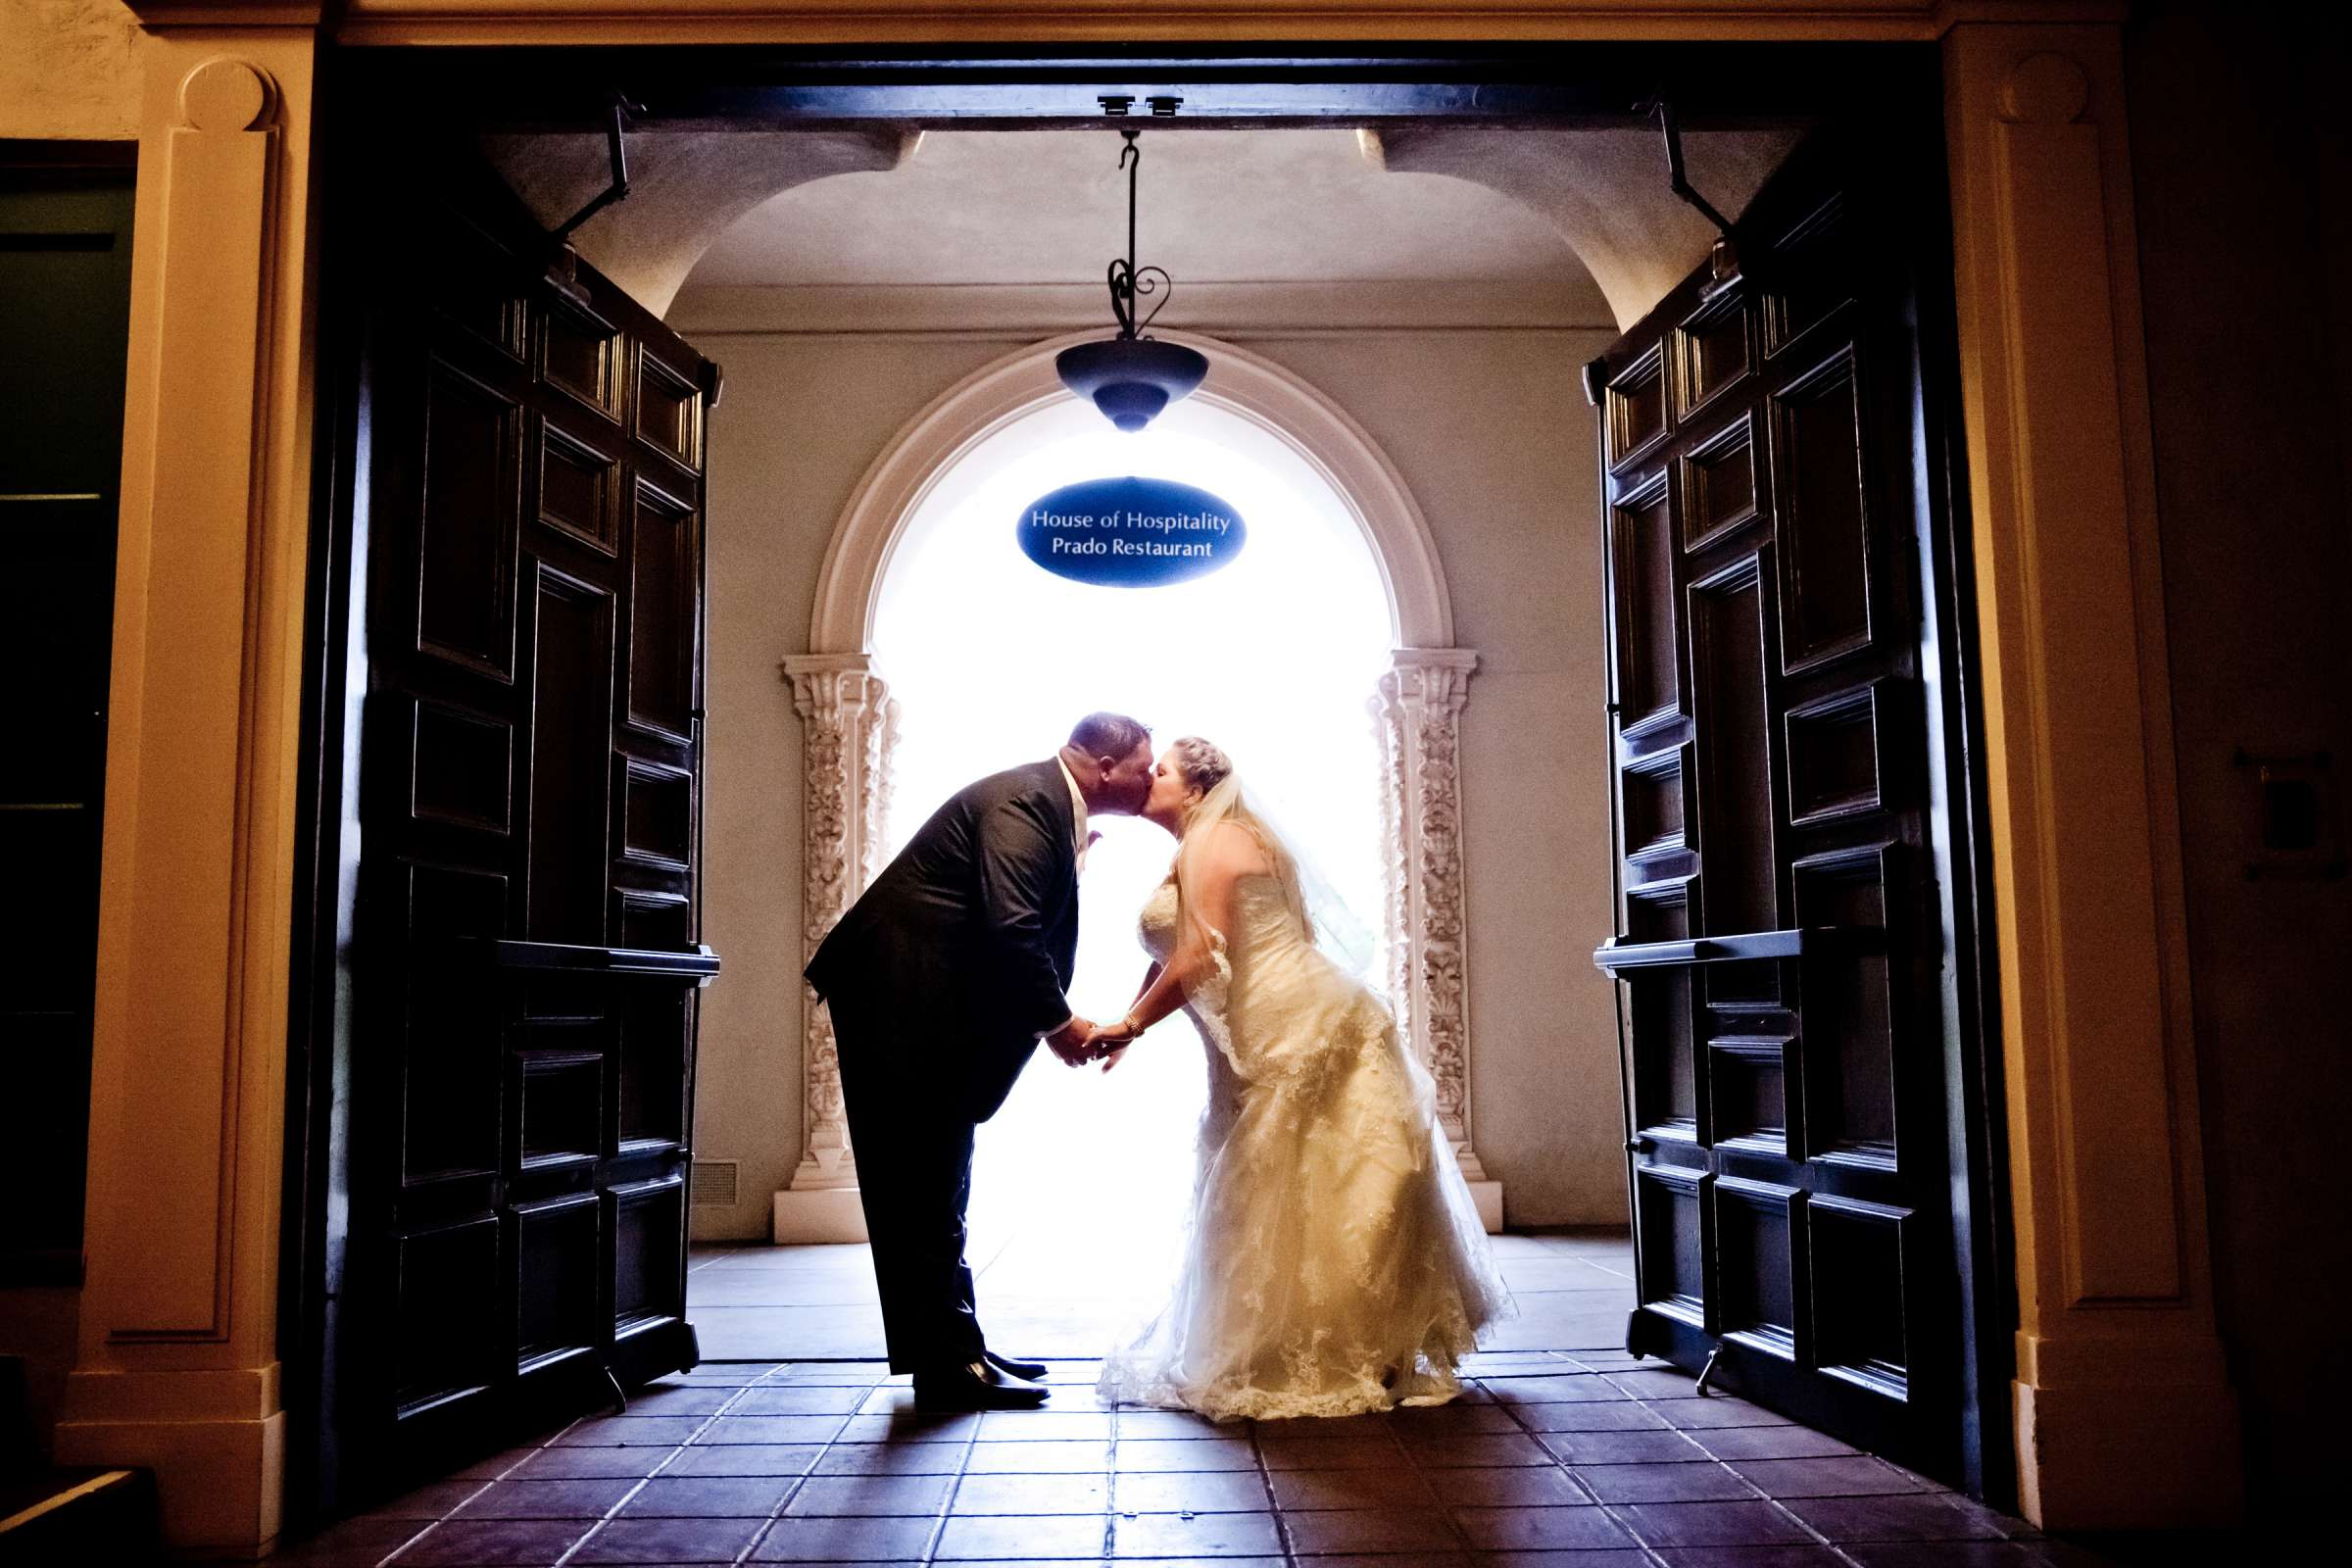 The Prado Wedding coordinated by Monarch Weddings, Eileen and Robbie Wedding Photo #19 by True Photography